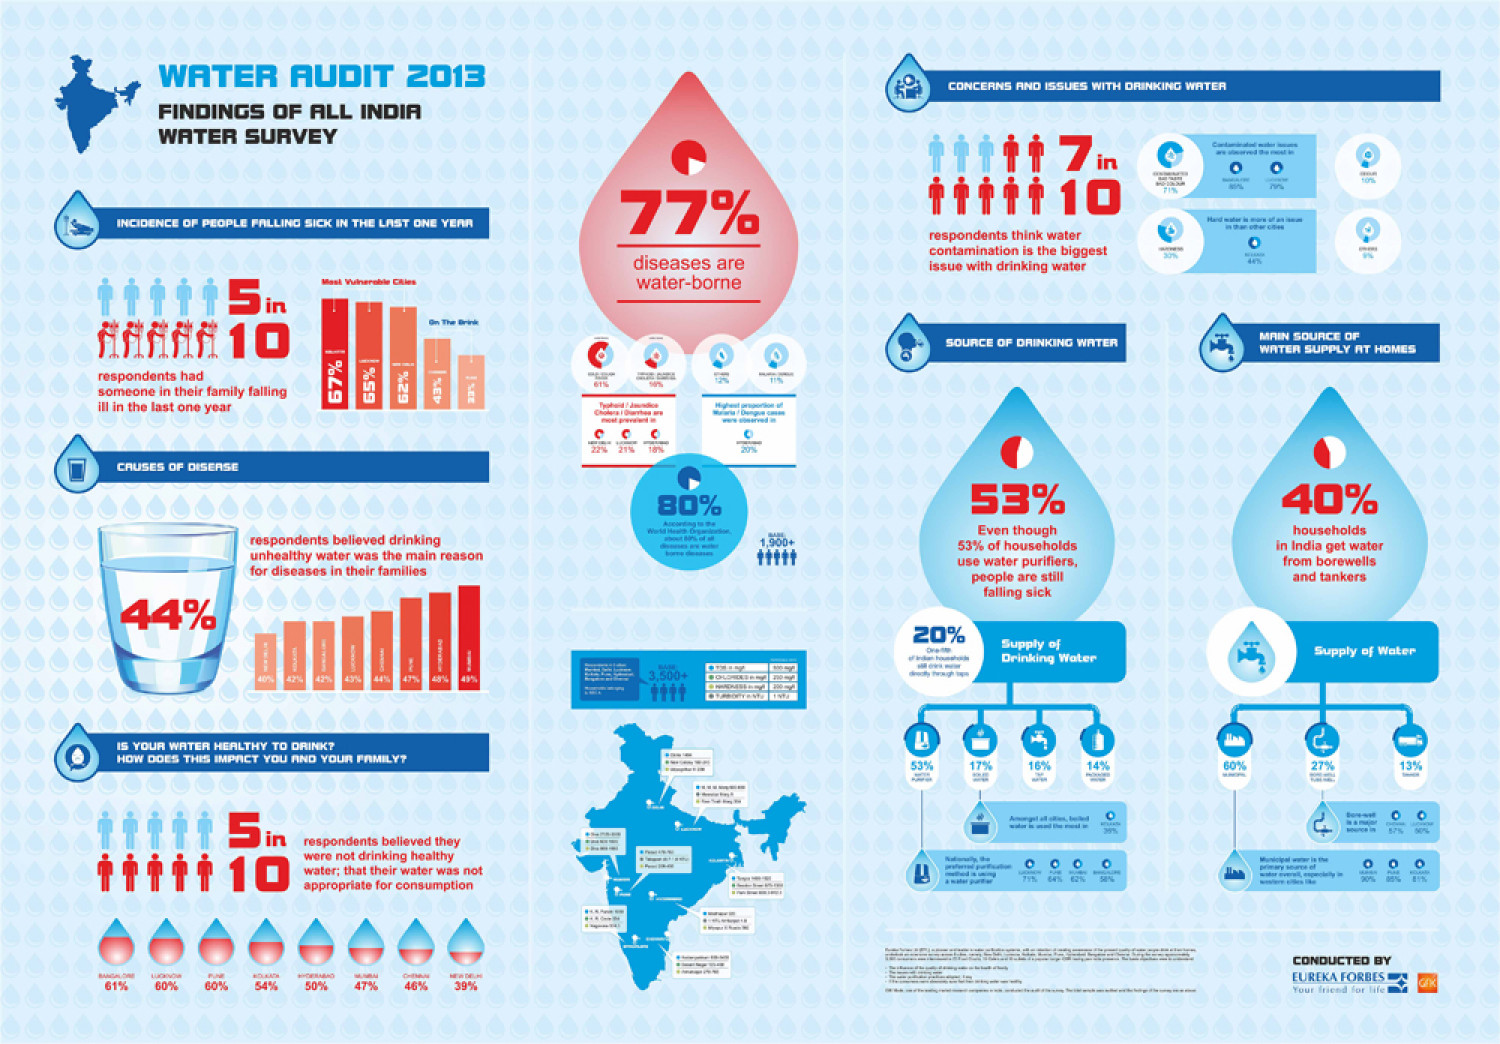 Water Audit 2013 Infographic